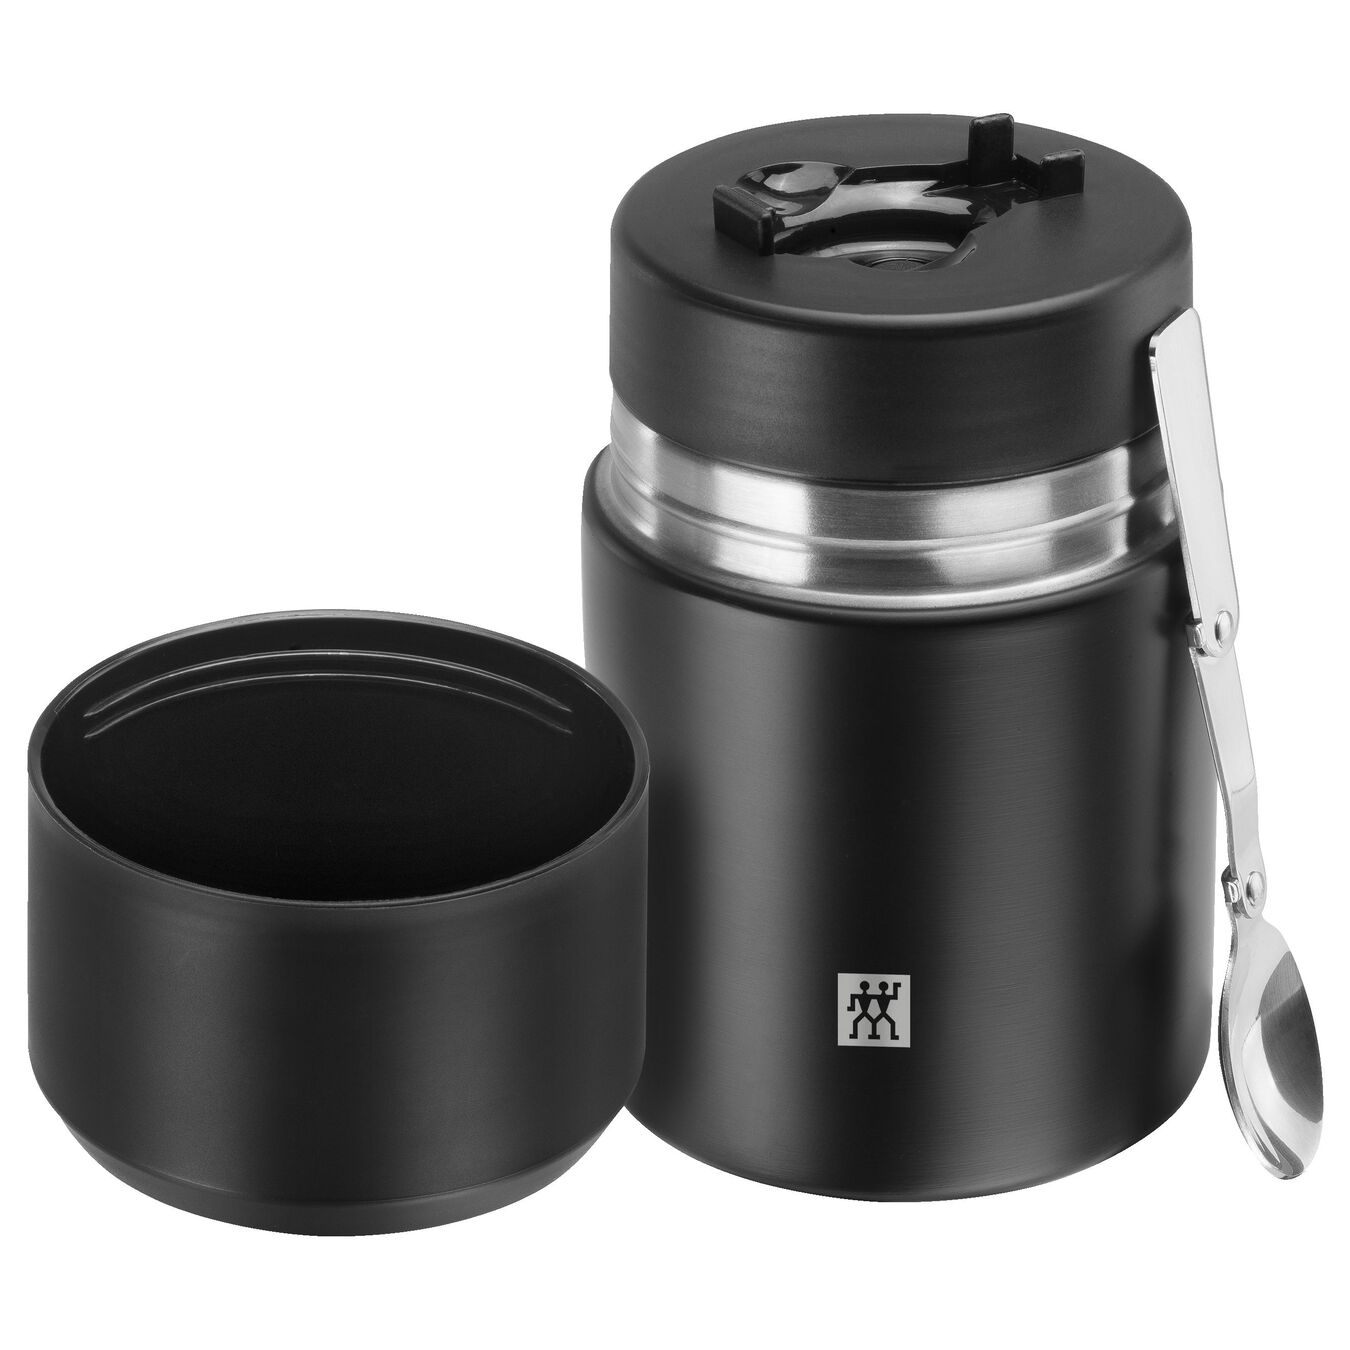 Contenant alimentaire isotherme, Black | Stainless steel | 700 ml,,large 3